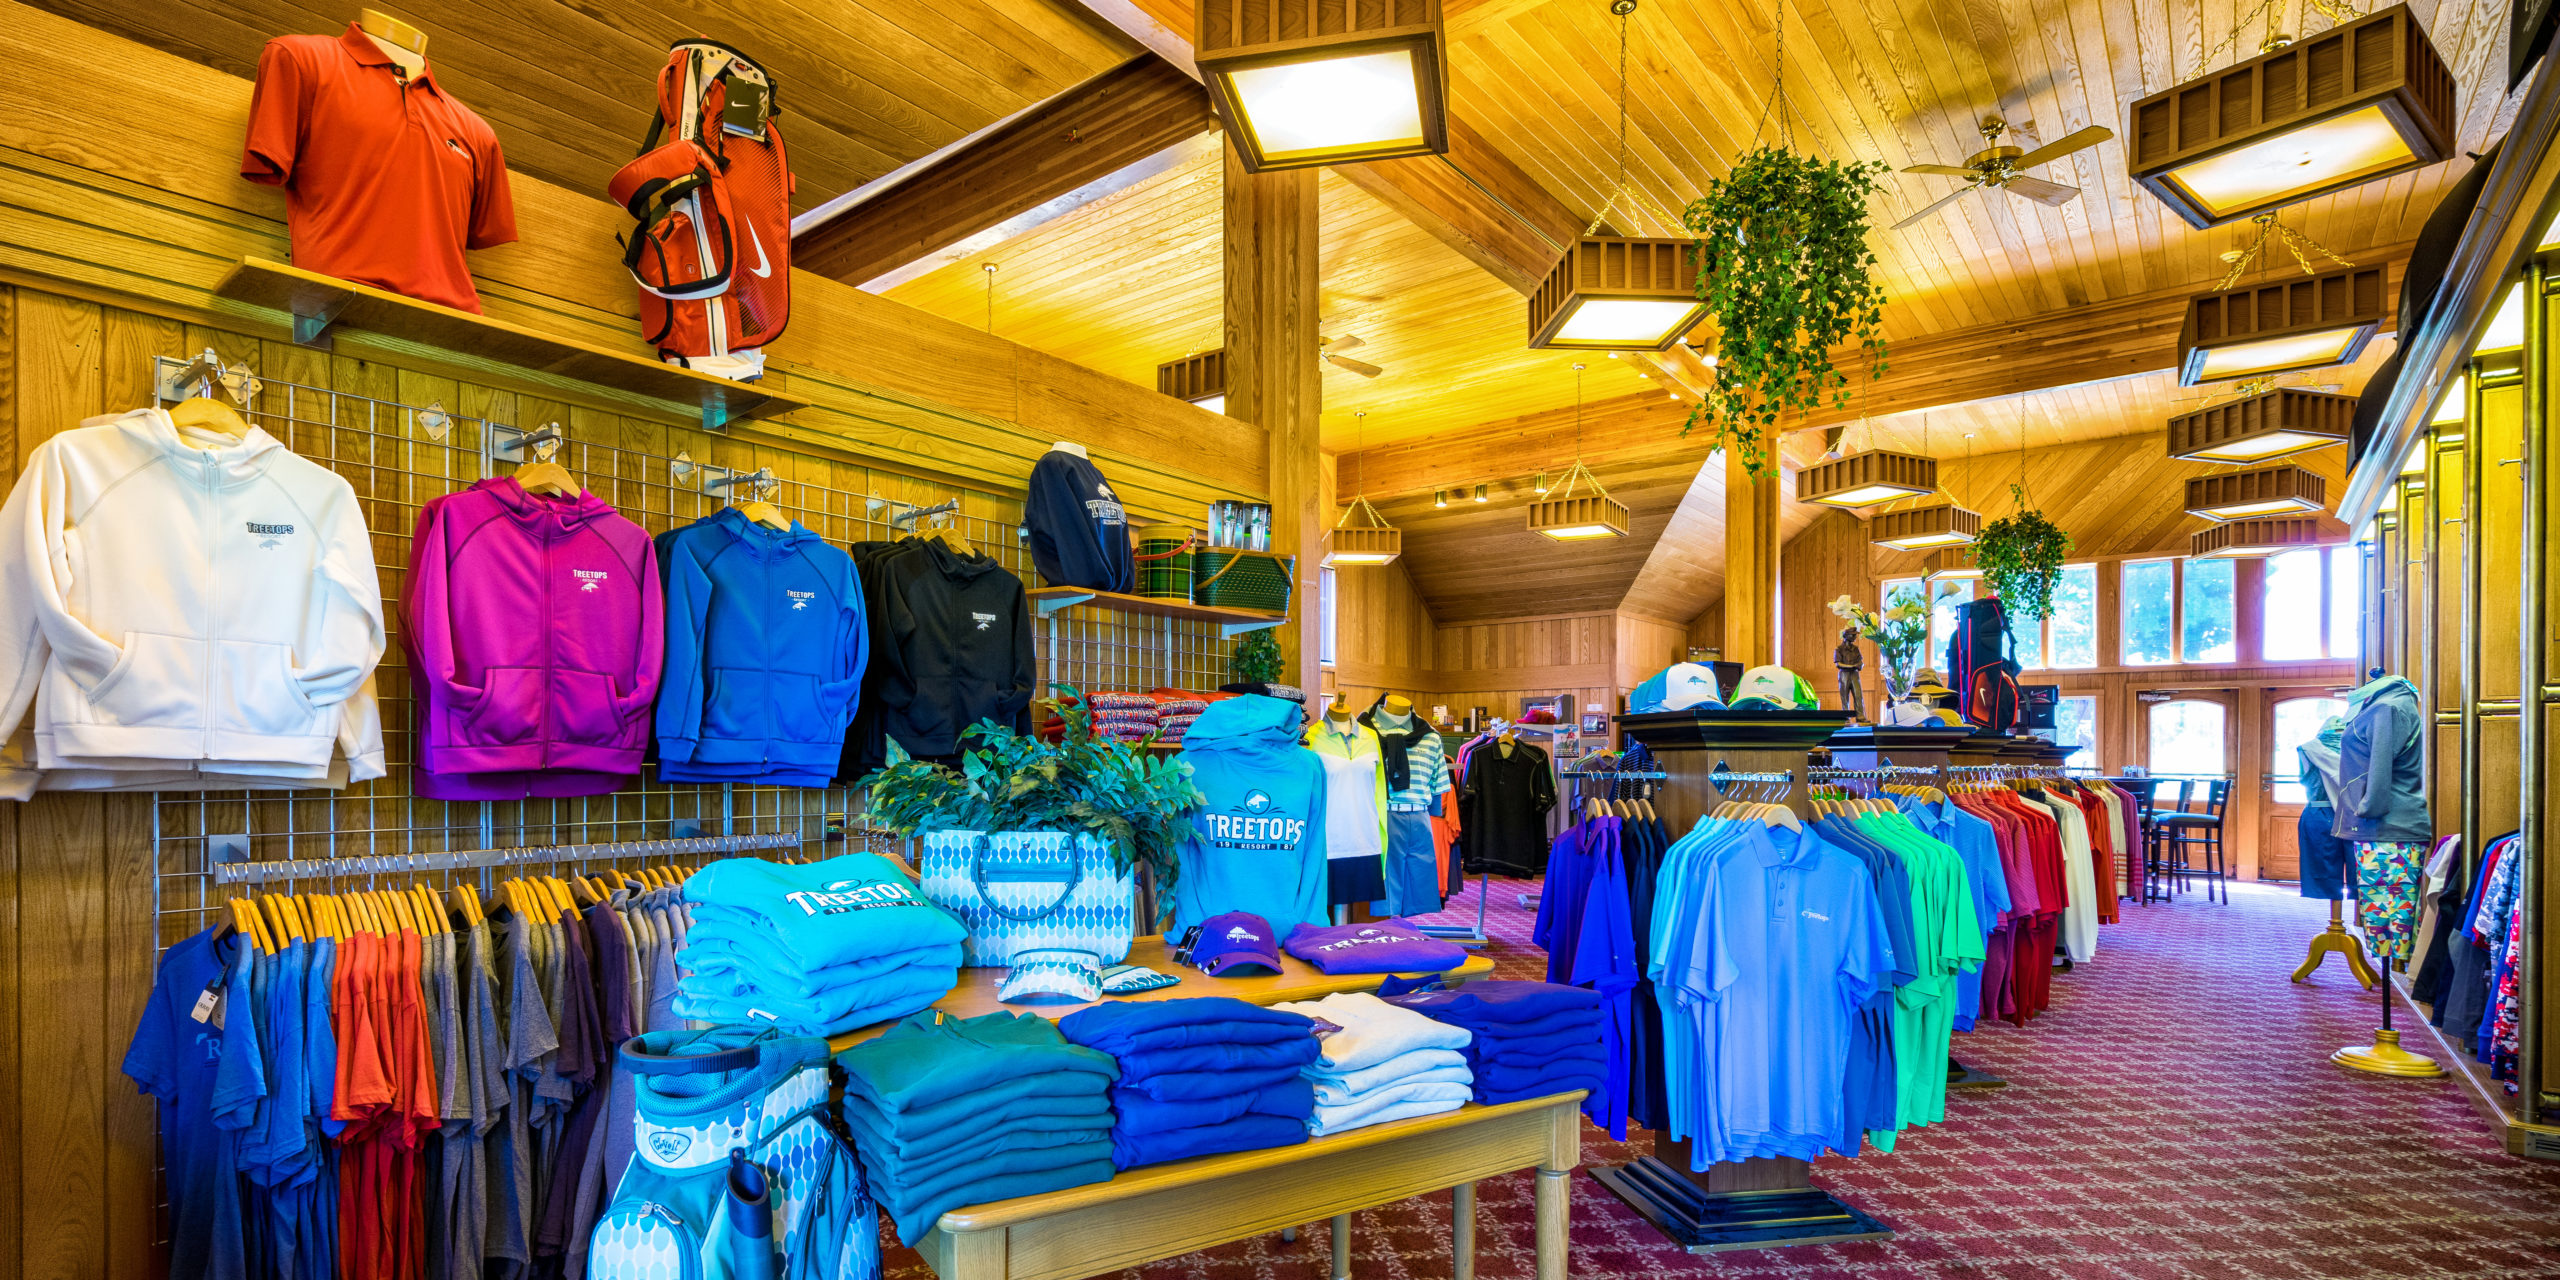 Polo shirts, sweatshirts, golf bags, and more on display at the Jones Pro Shop at Treetops Resort.